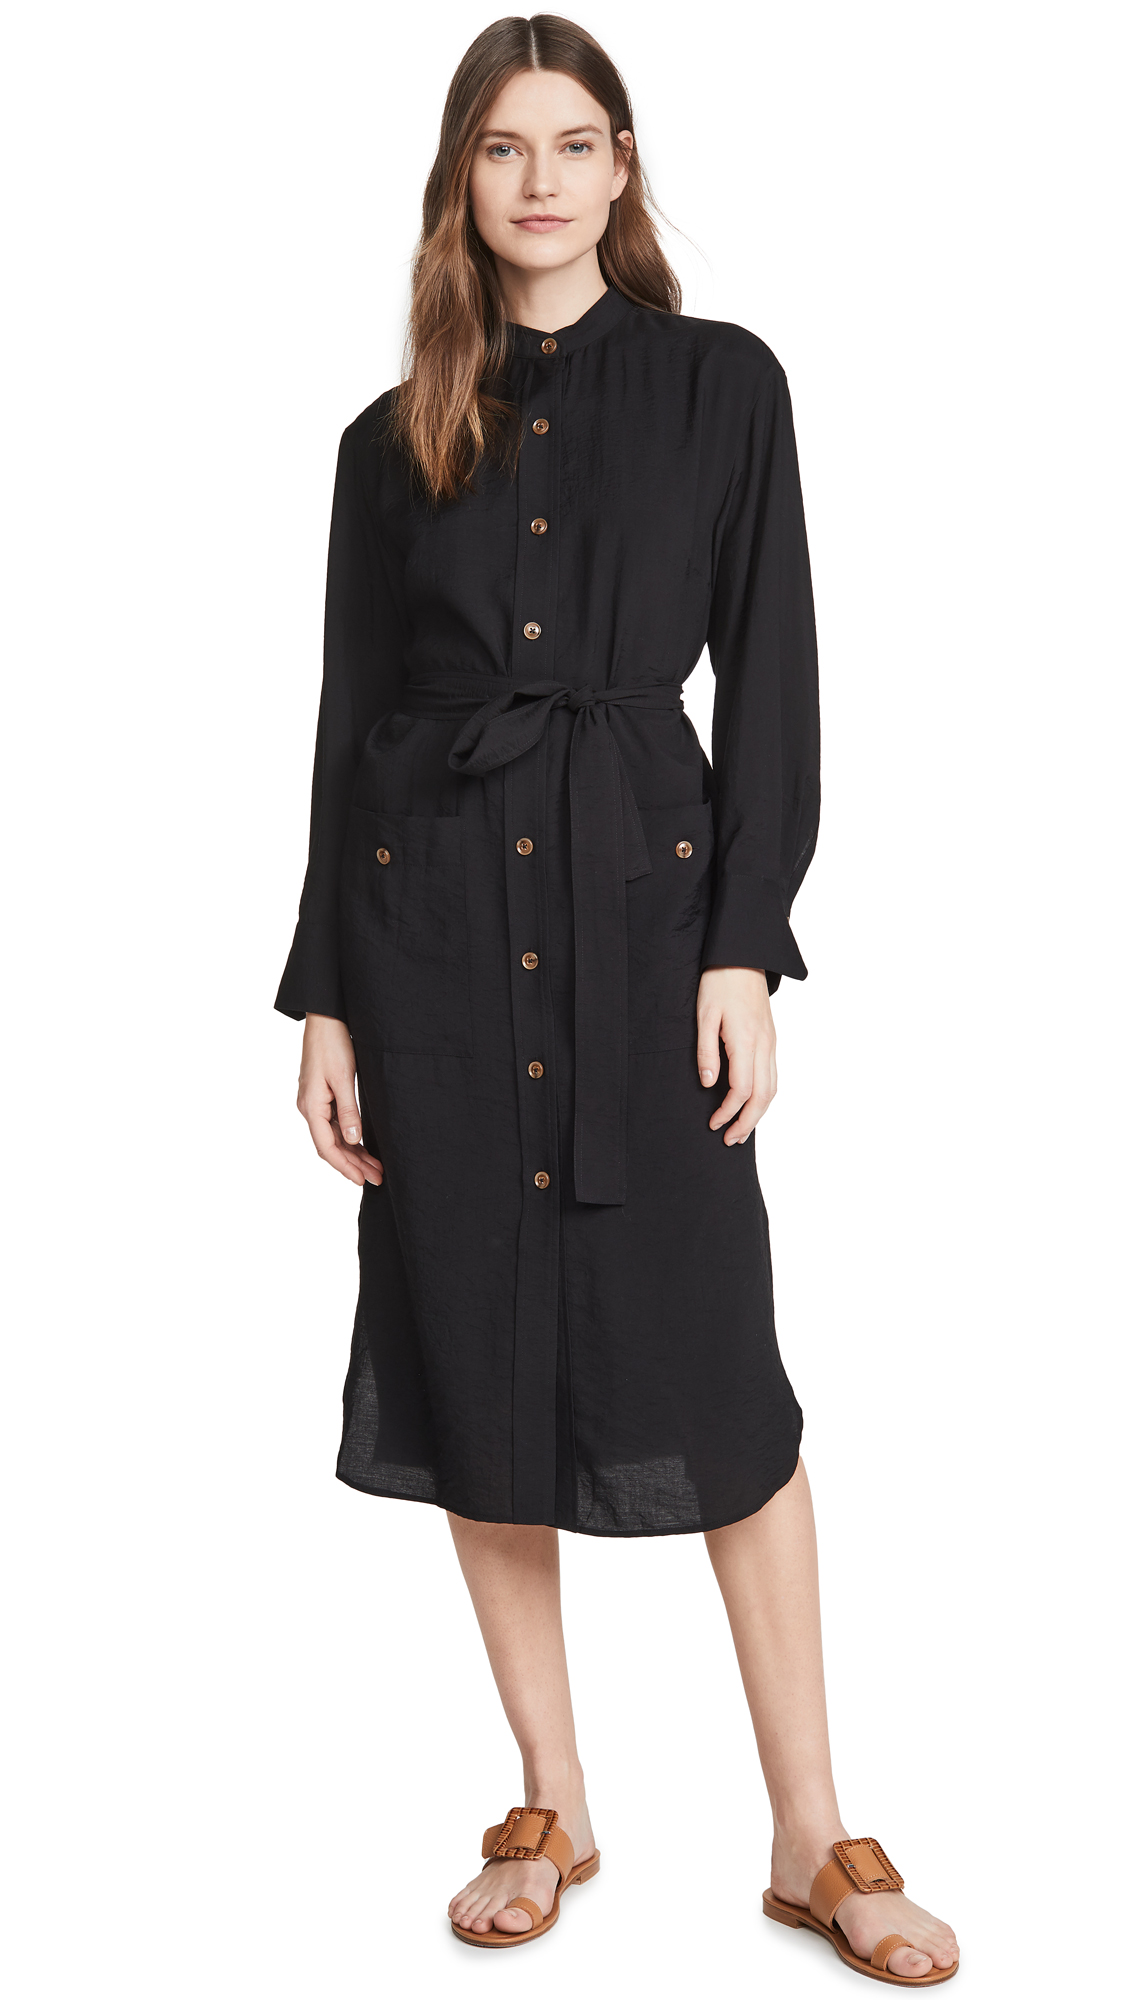 Vince Belted Button Down Dress - 50% Off Sale